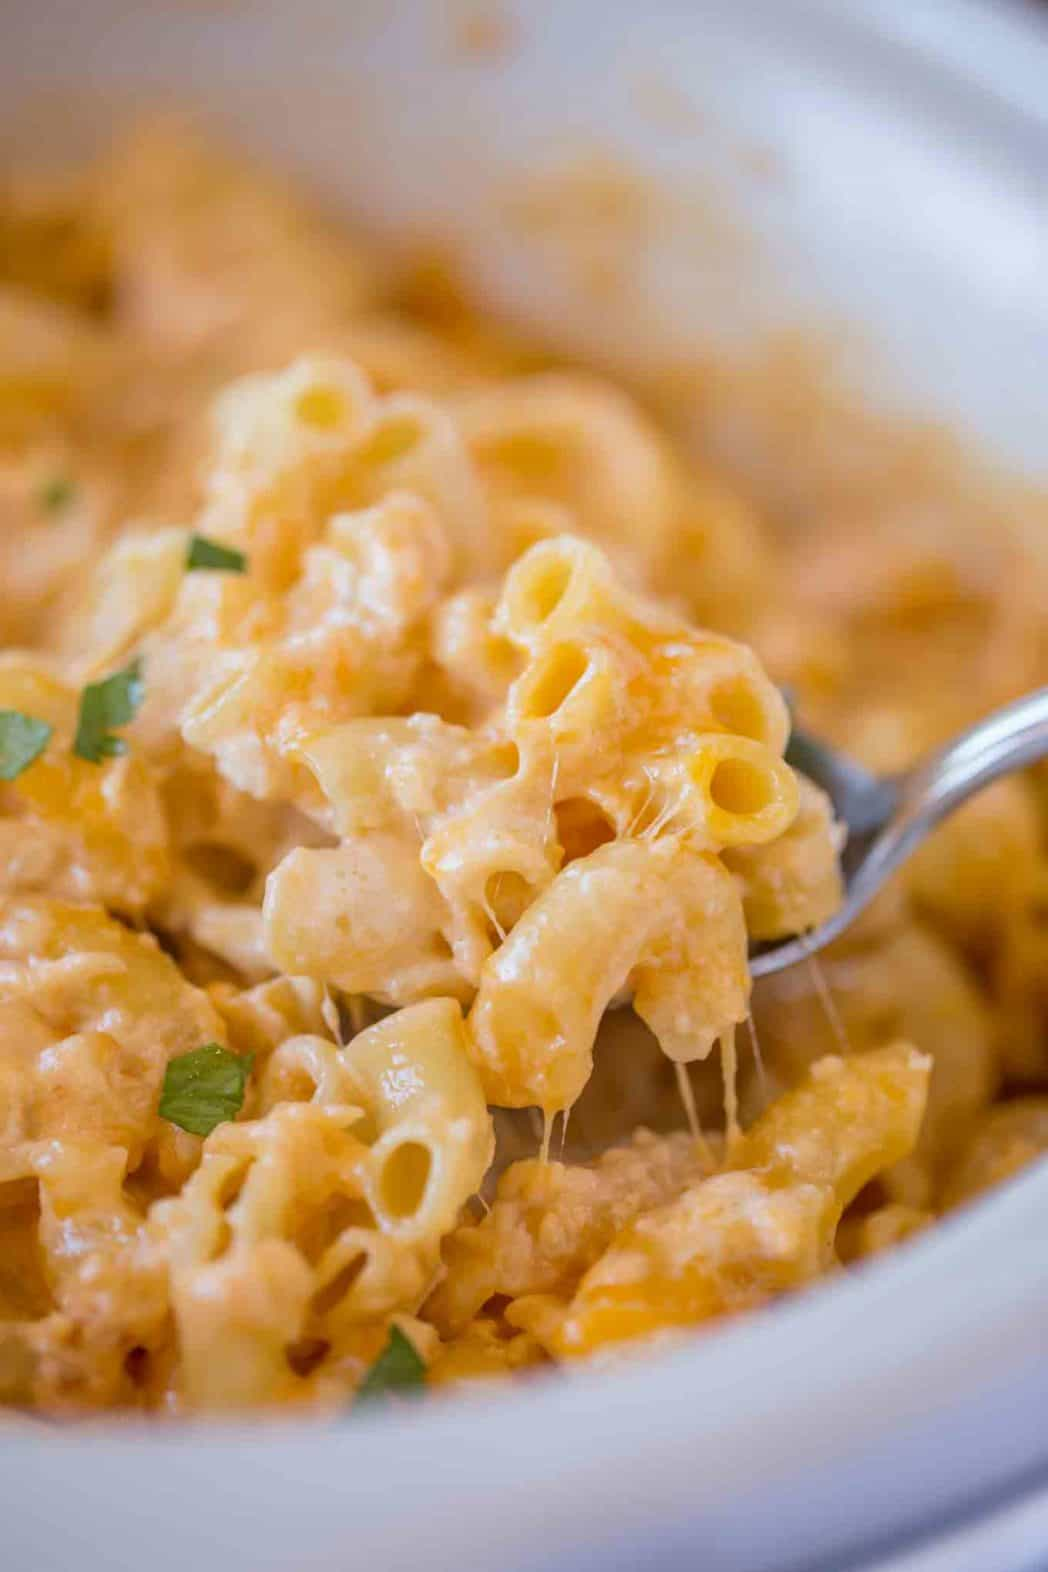 Crock Bpot Bmac N Cheese together with Slow Cooker Mac Cheese furthermore Slow Cooker Macaroni And Cheese further Crock Pot Chili Mac And Cheese Recipe E in addition Crockpot Bacon Mac Cheese Delightfulemade Vert. on macaroni and cheese recipes crockpot